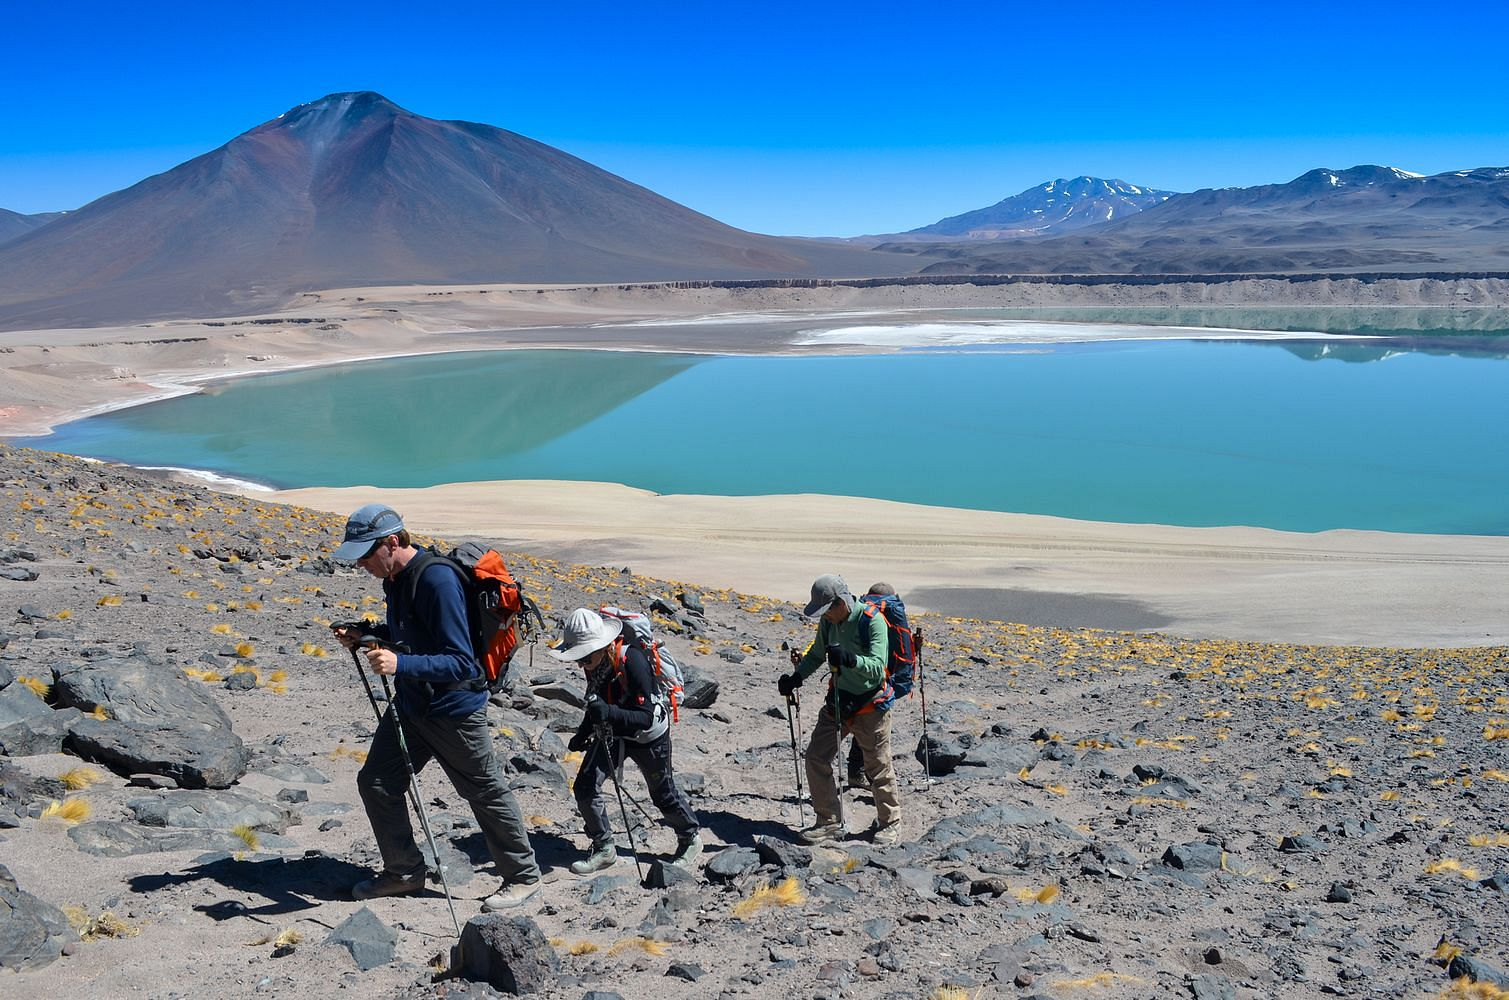 Training and acclimatization process at Laguna Verde near the Ojos del Salado Base Camp. Chile Montaña Expedition 2017.